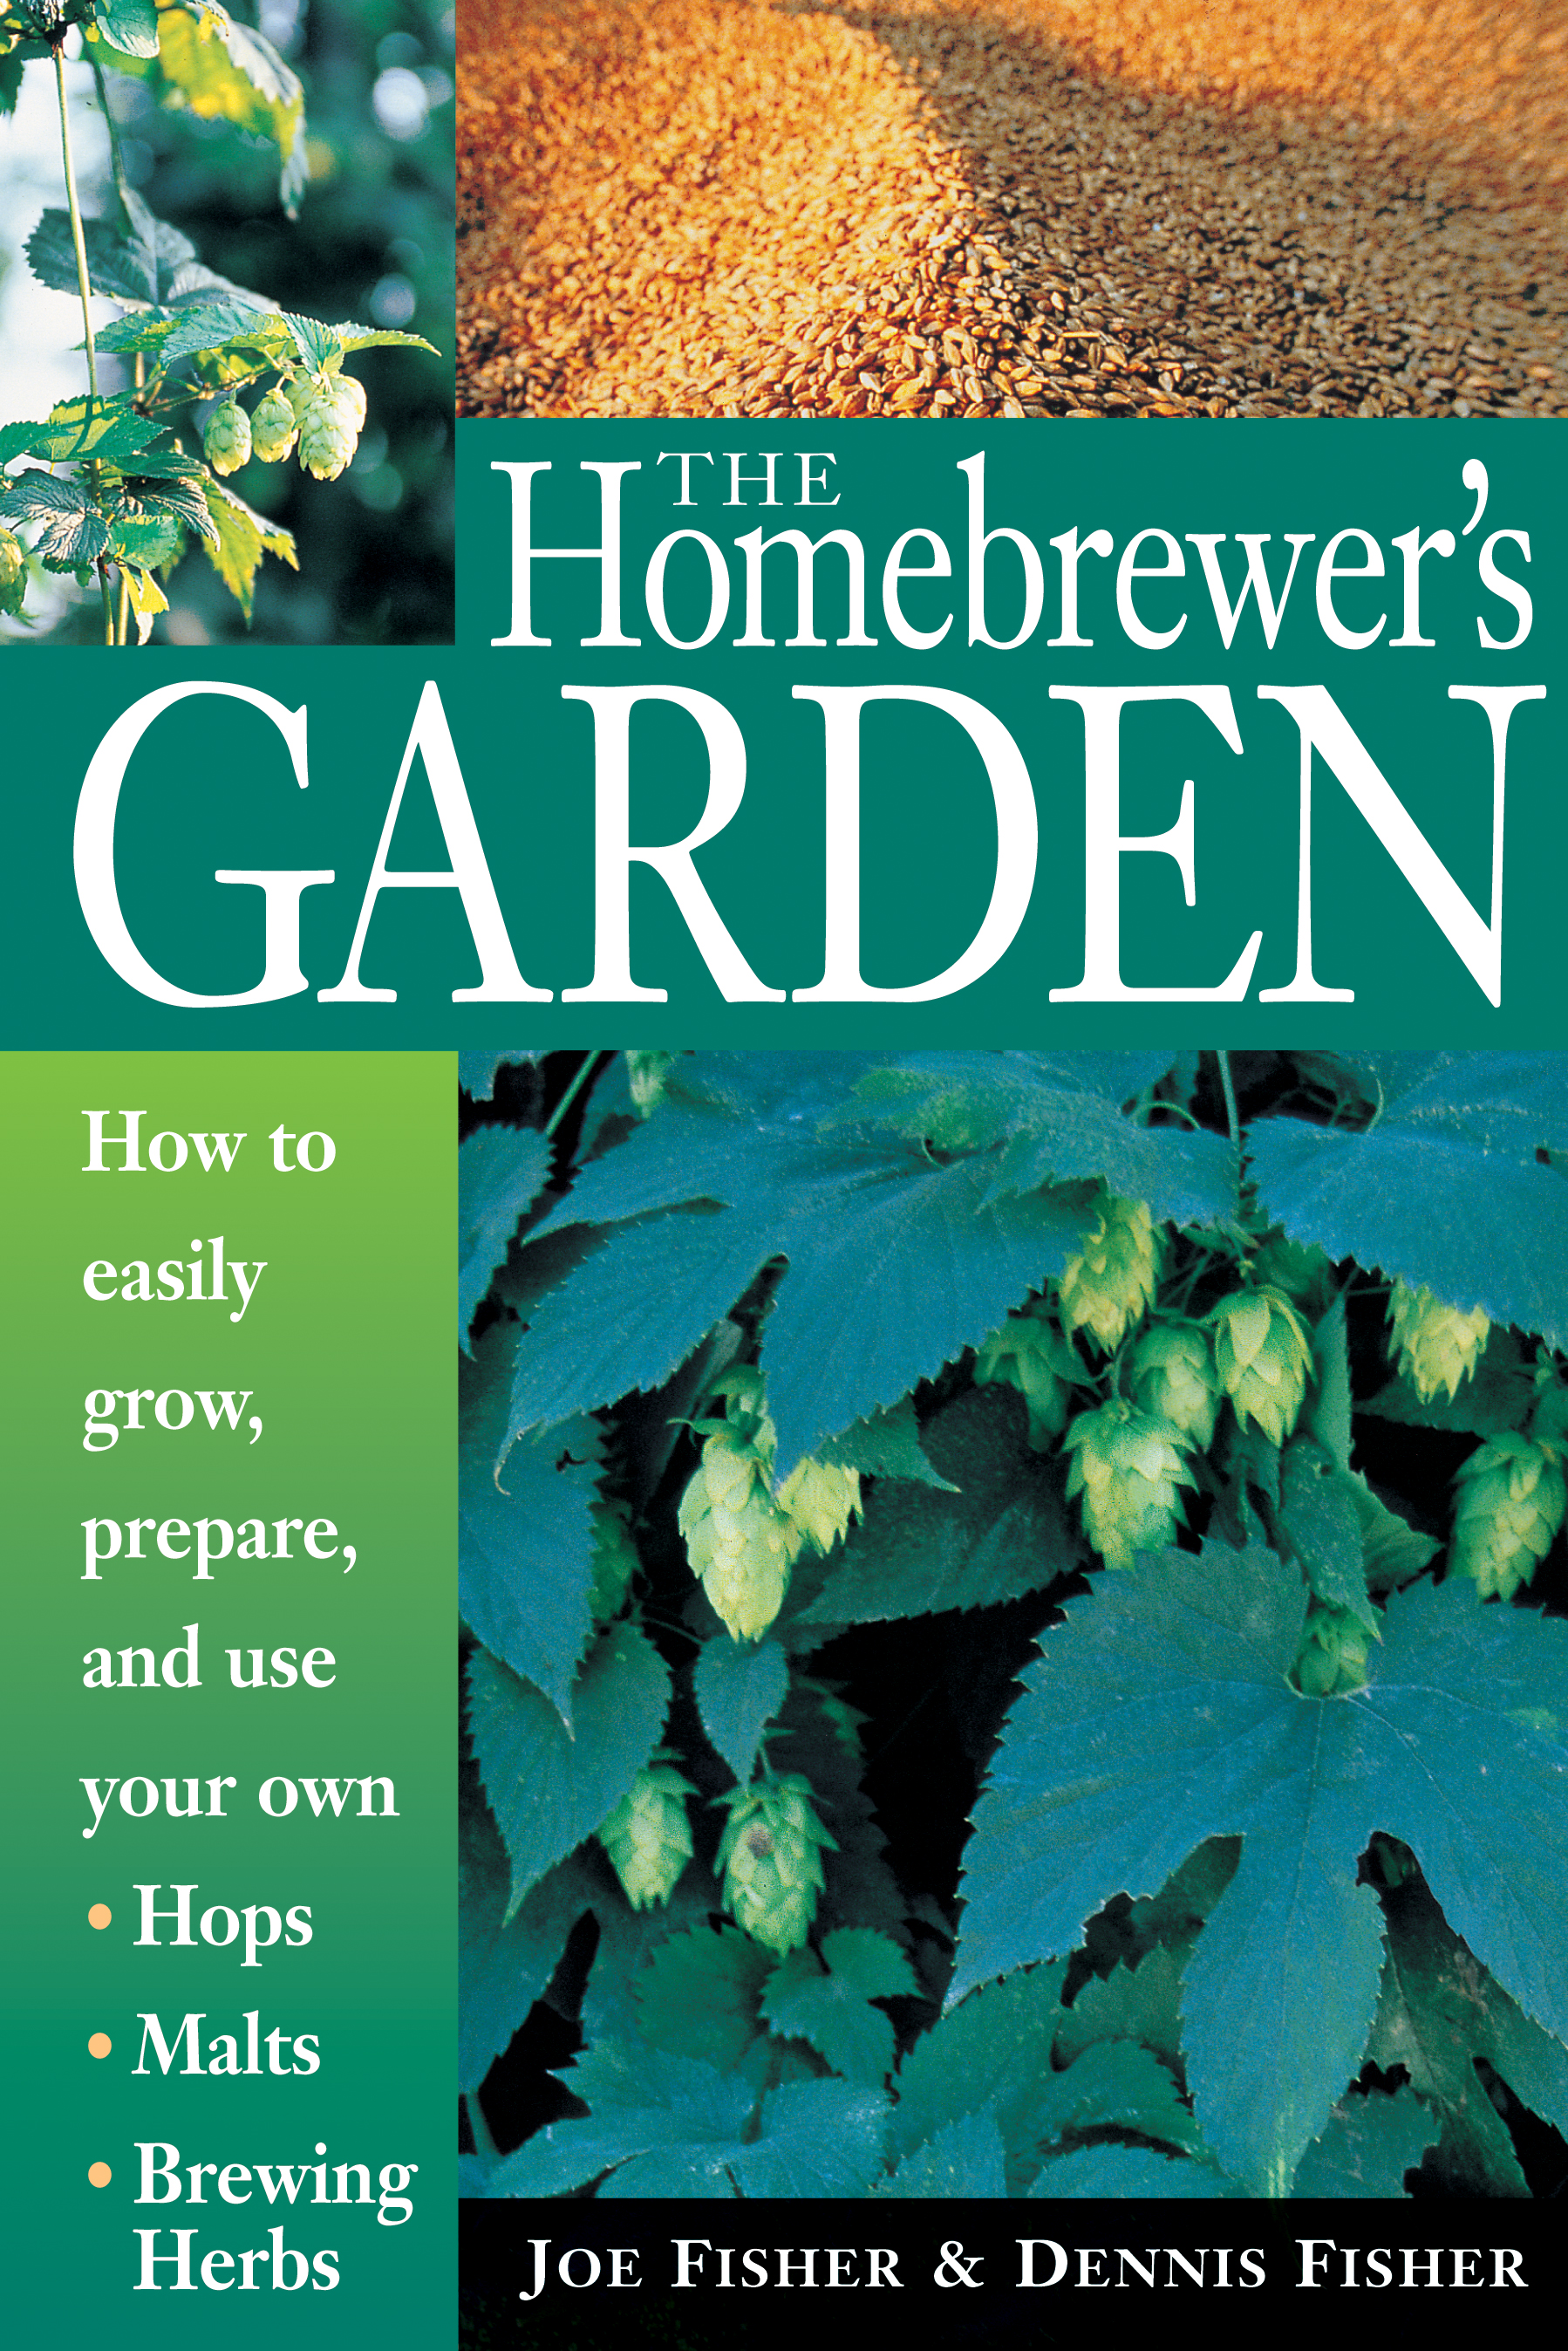 The Homebrewer's Garden How to Easily Grow, Prepare, and Use Your Own Hops, Malts, Brewing Herbs